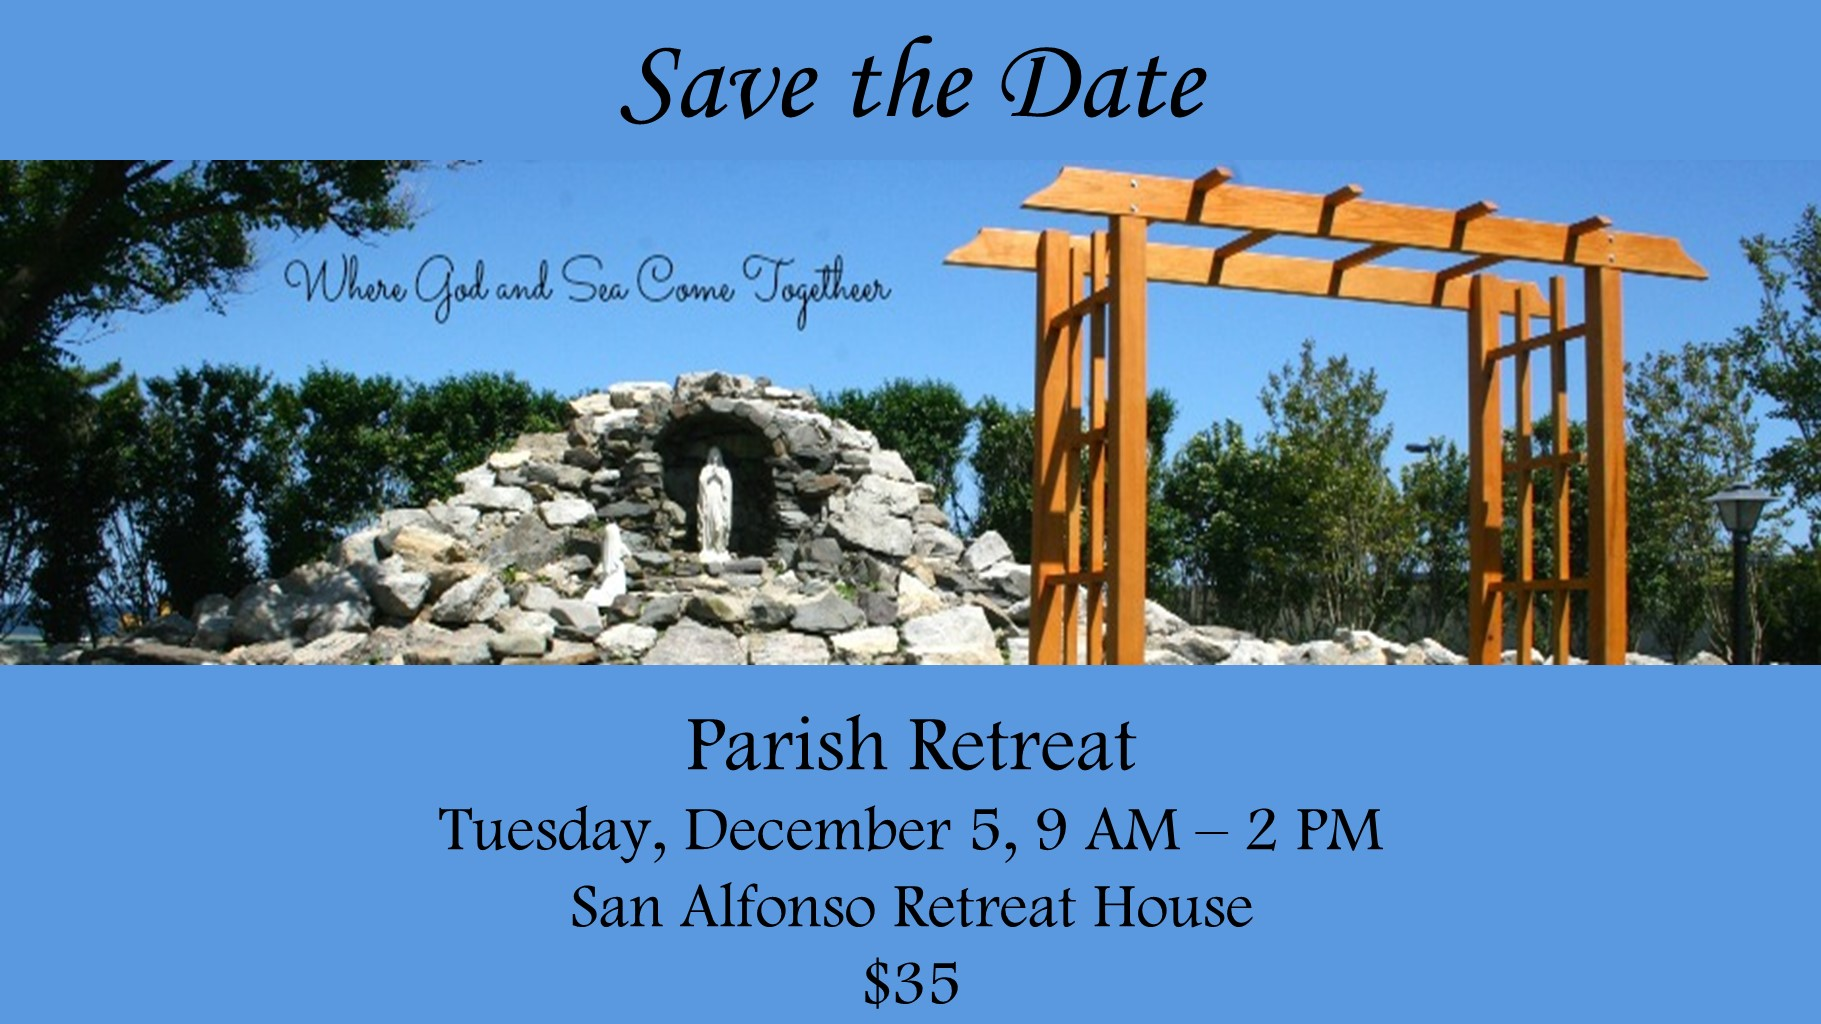 Parish Retreat STD